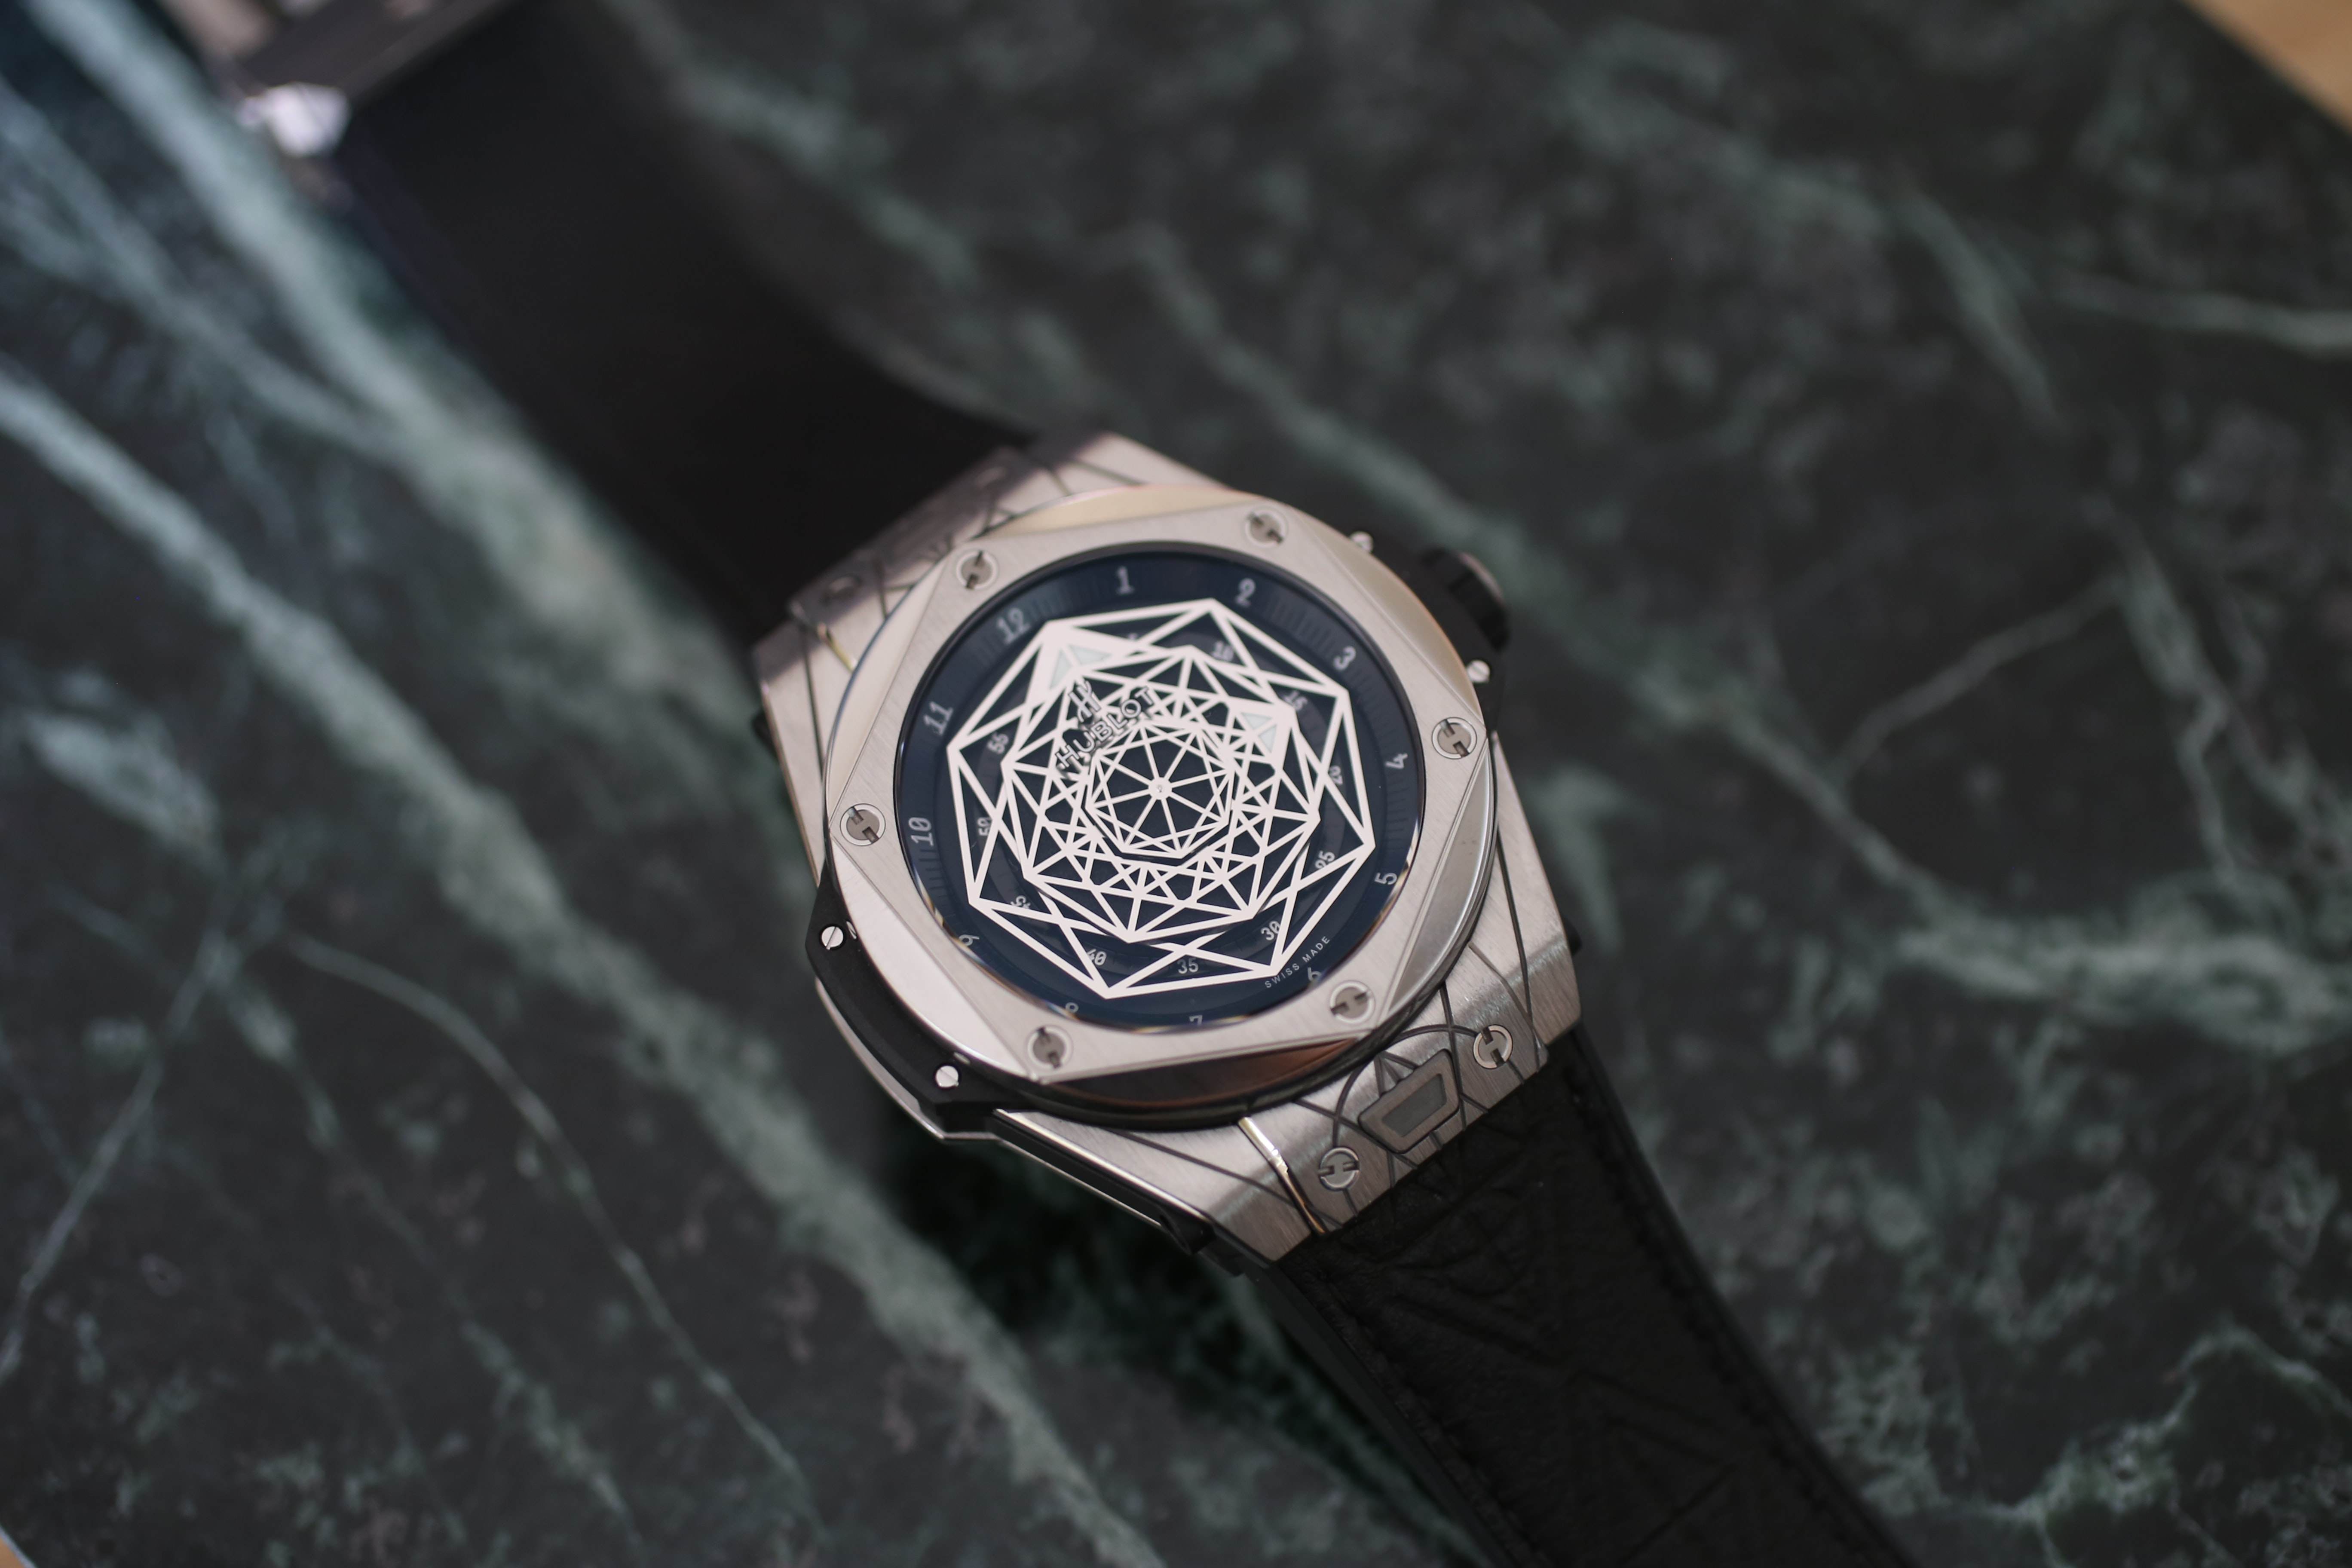 hublot big bang sang bleu maxime buchi In-Depth: The Hublot Big Bang Sang Bleu – A Tattoo-Inspired Limited Edition That I Actually Like (A Lot) In-Depth: The Hublot Big Bang Sang Bleu – A Tattoo-Inspired Limited Edition That I Actually Like (A Lot) IMG 1018